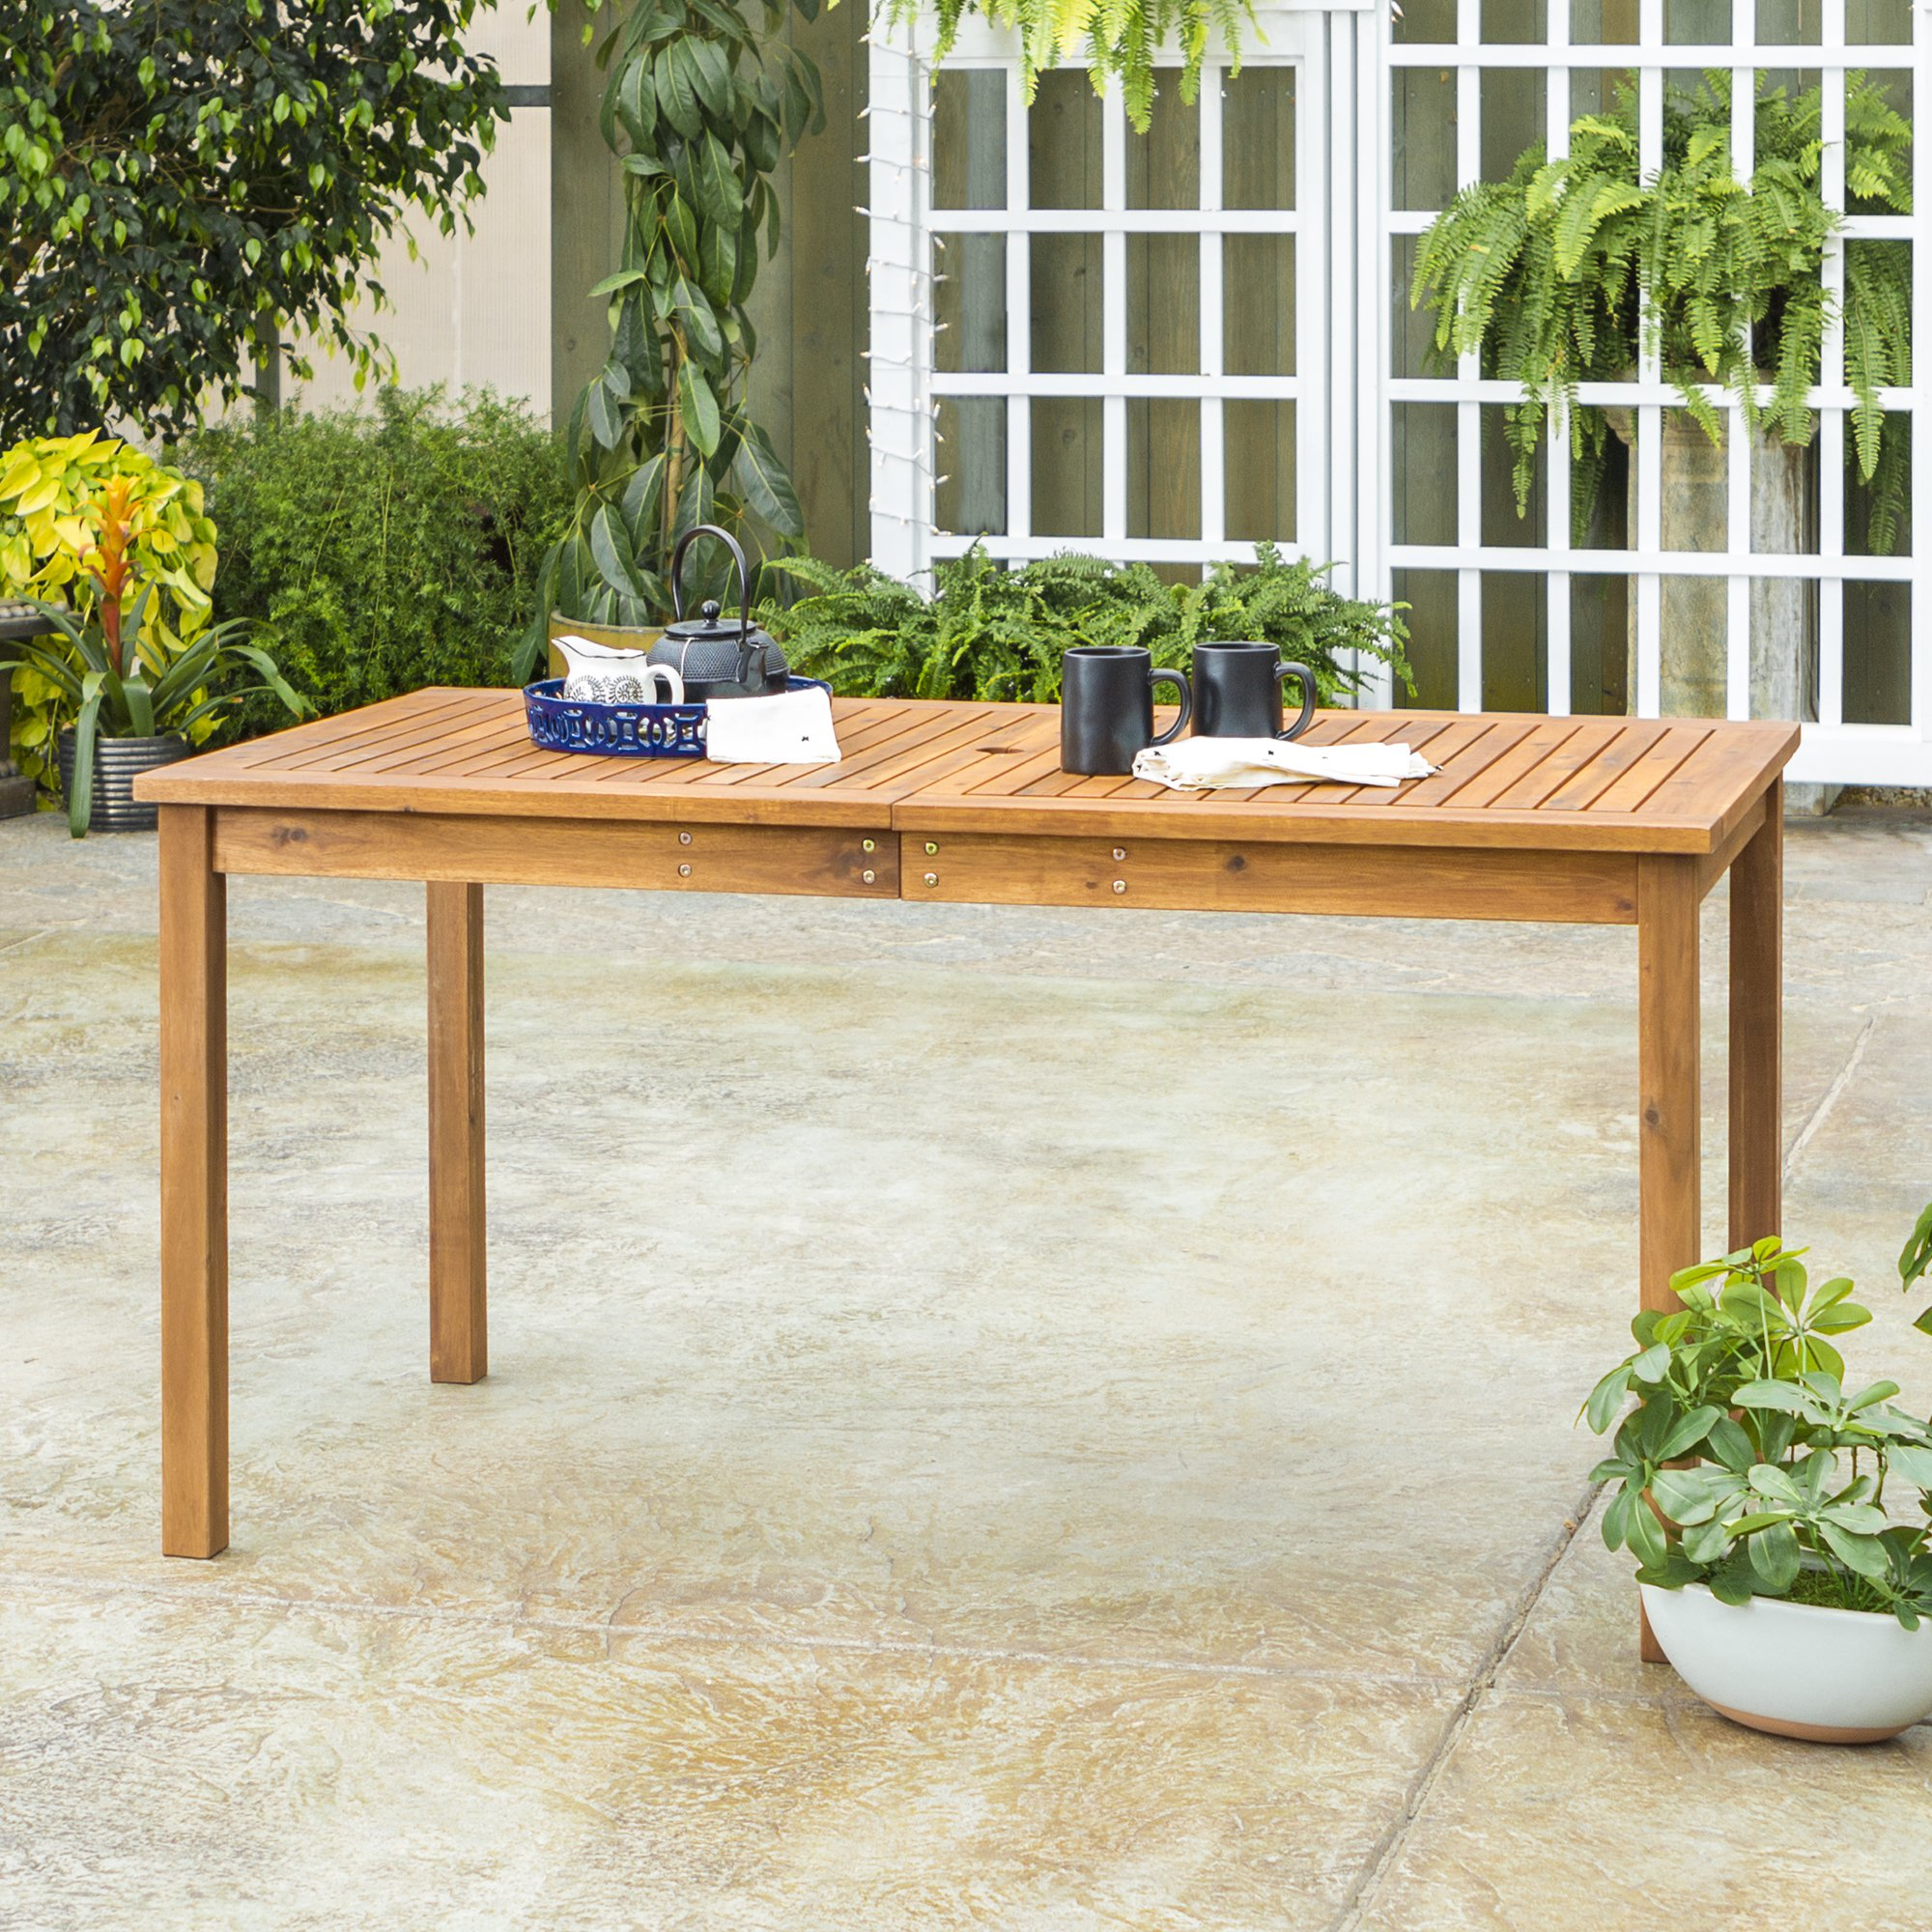 WE Furniture AZWSDTBR Outdoor Dining Table, 60'', Brown